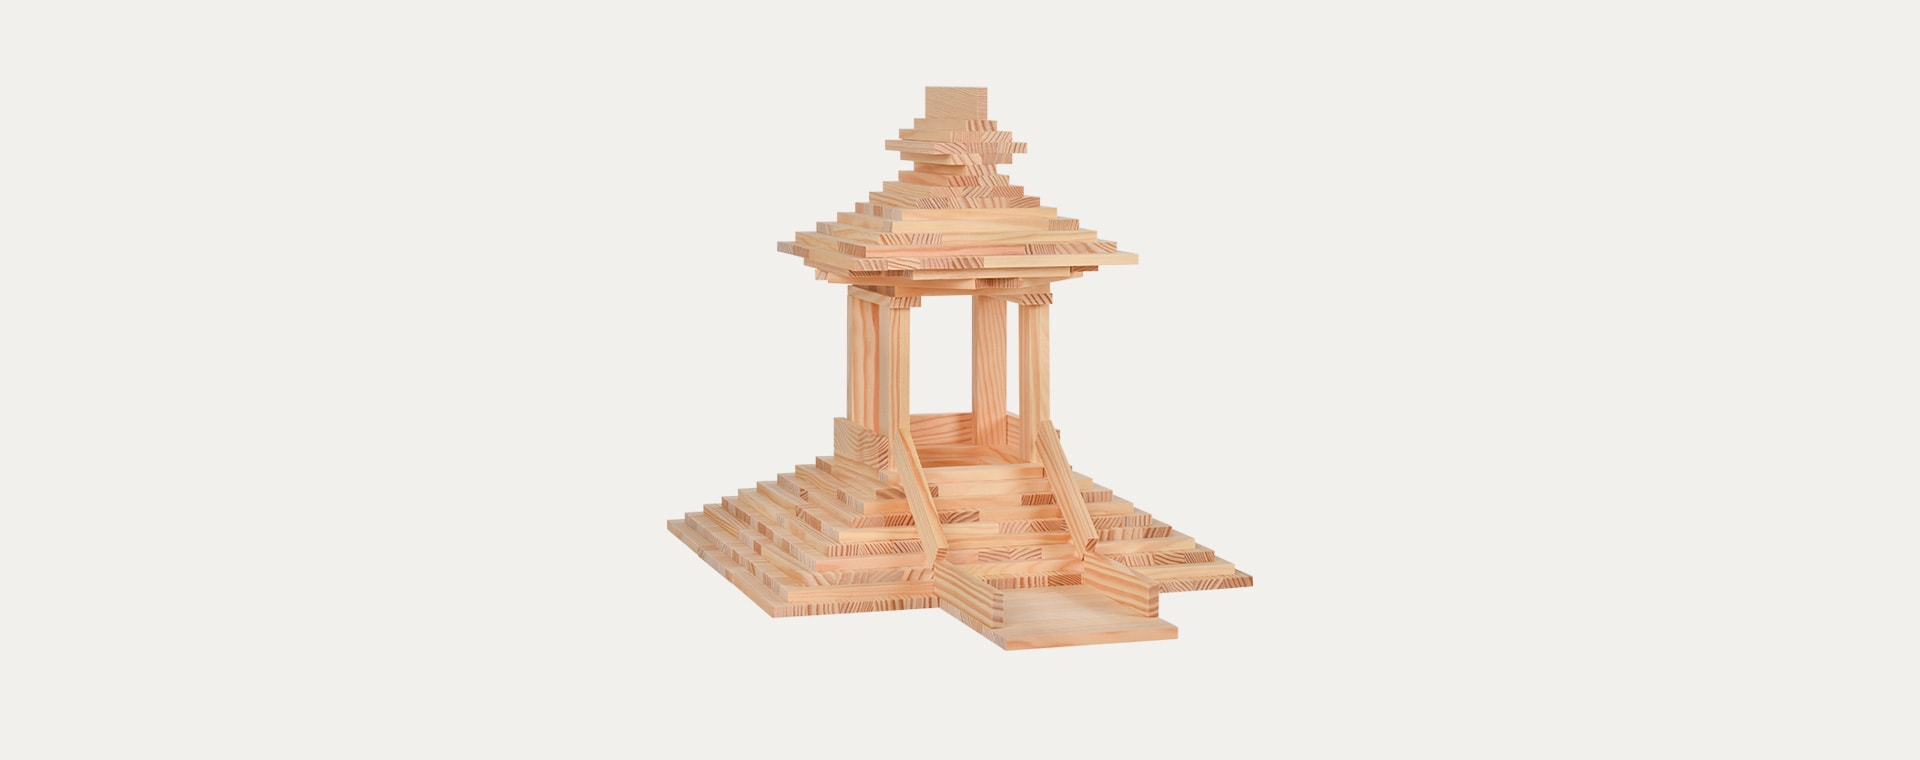 Neutral kapla Building Set - 280 Pieces Box